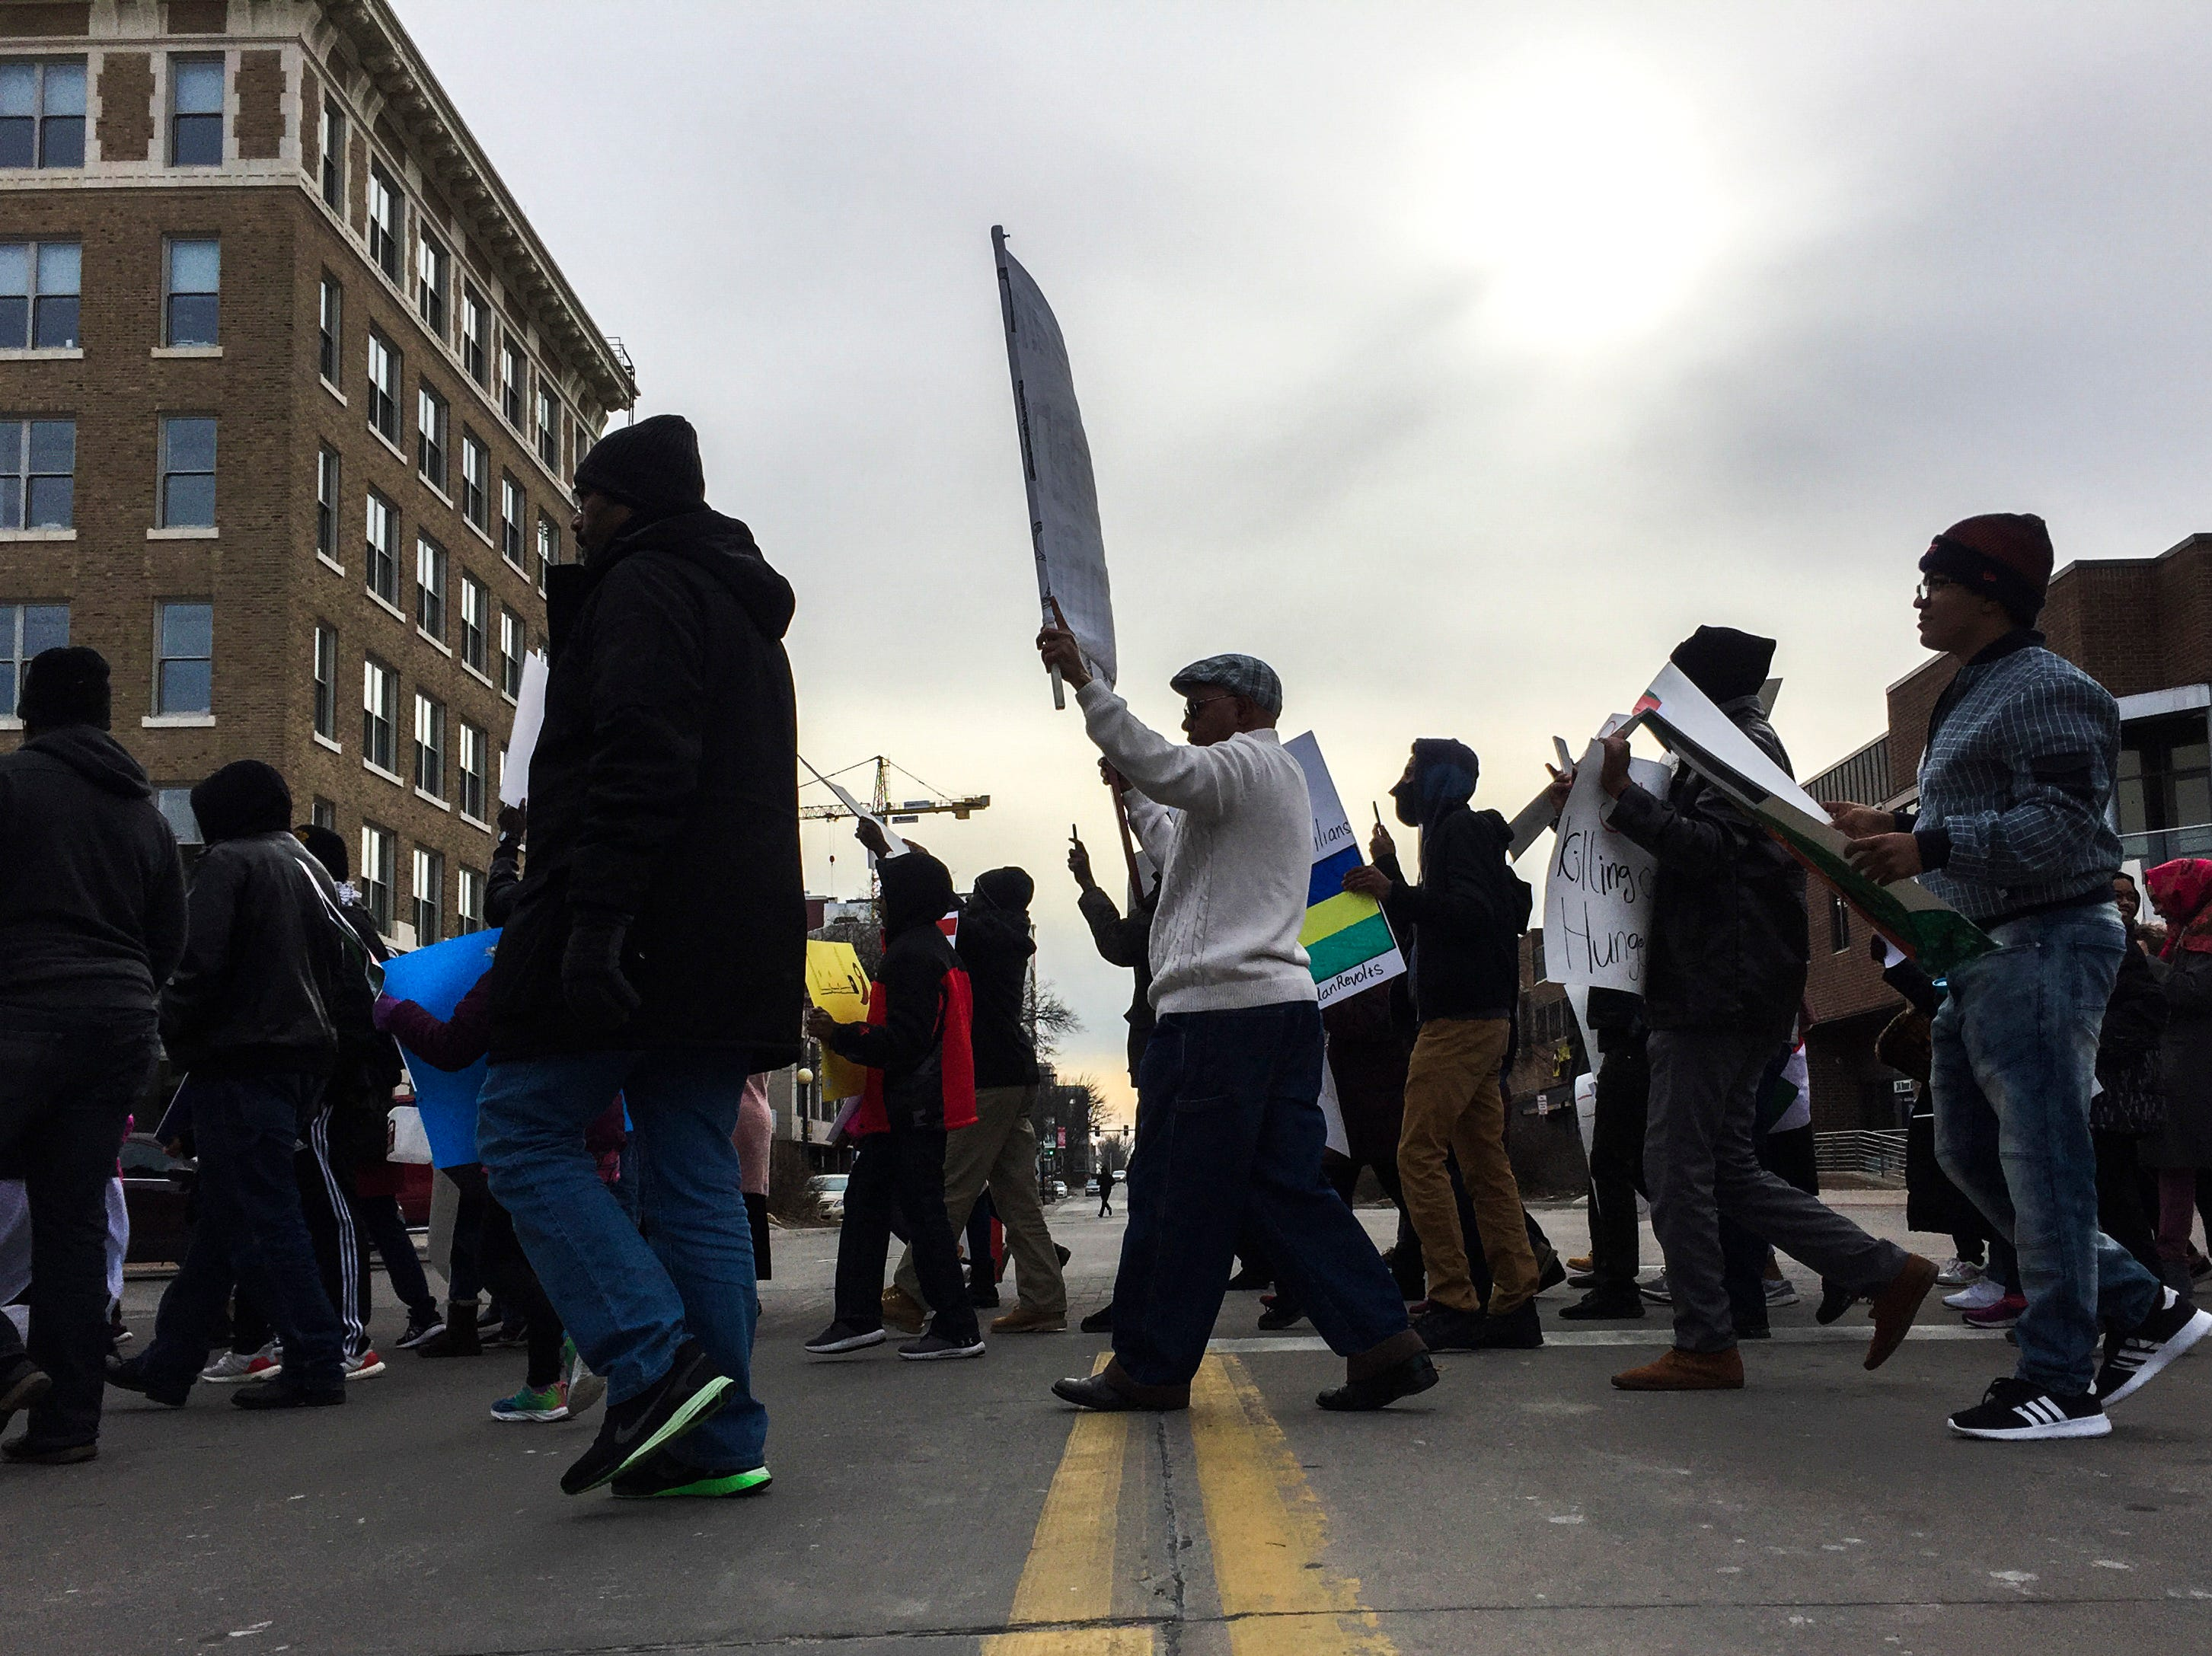 Sudanese members of the Iowa City community march during a peaceful protest in opposition to the killings in their home country on Monday, Dec. 24, 2018, in downtown Iowa City.